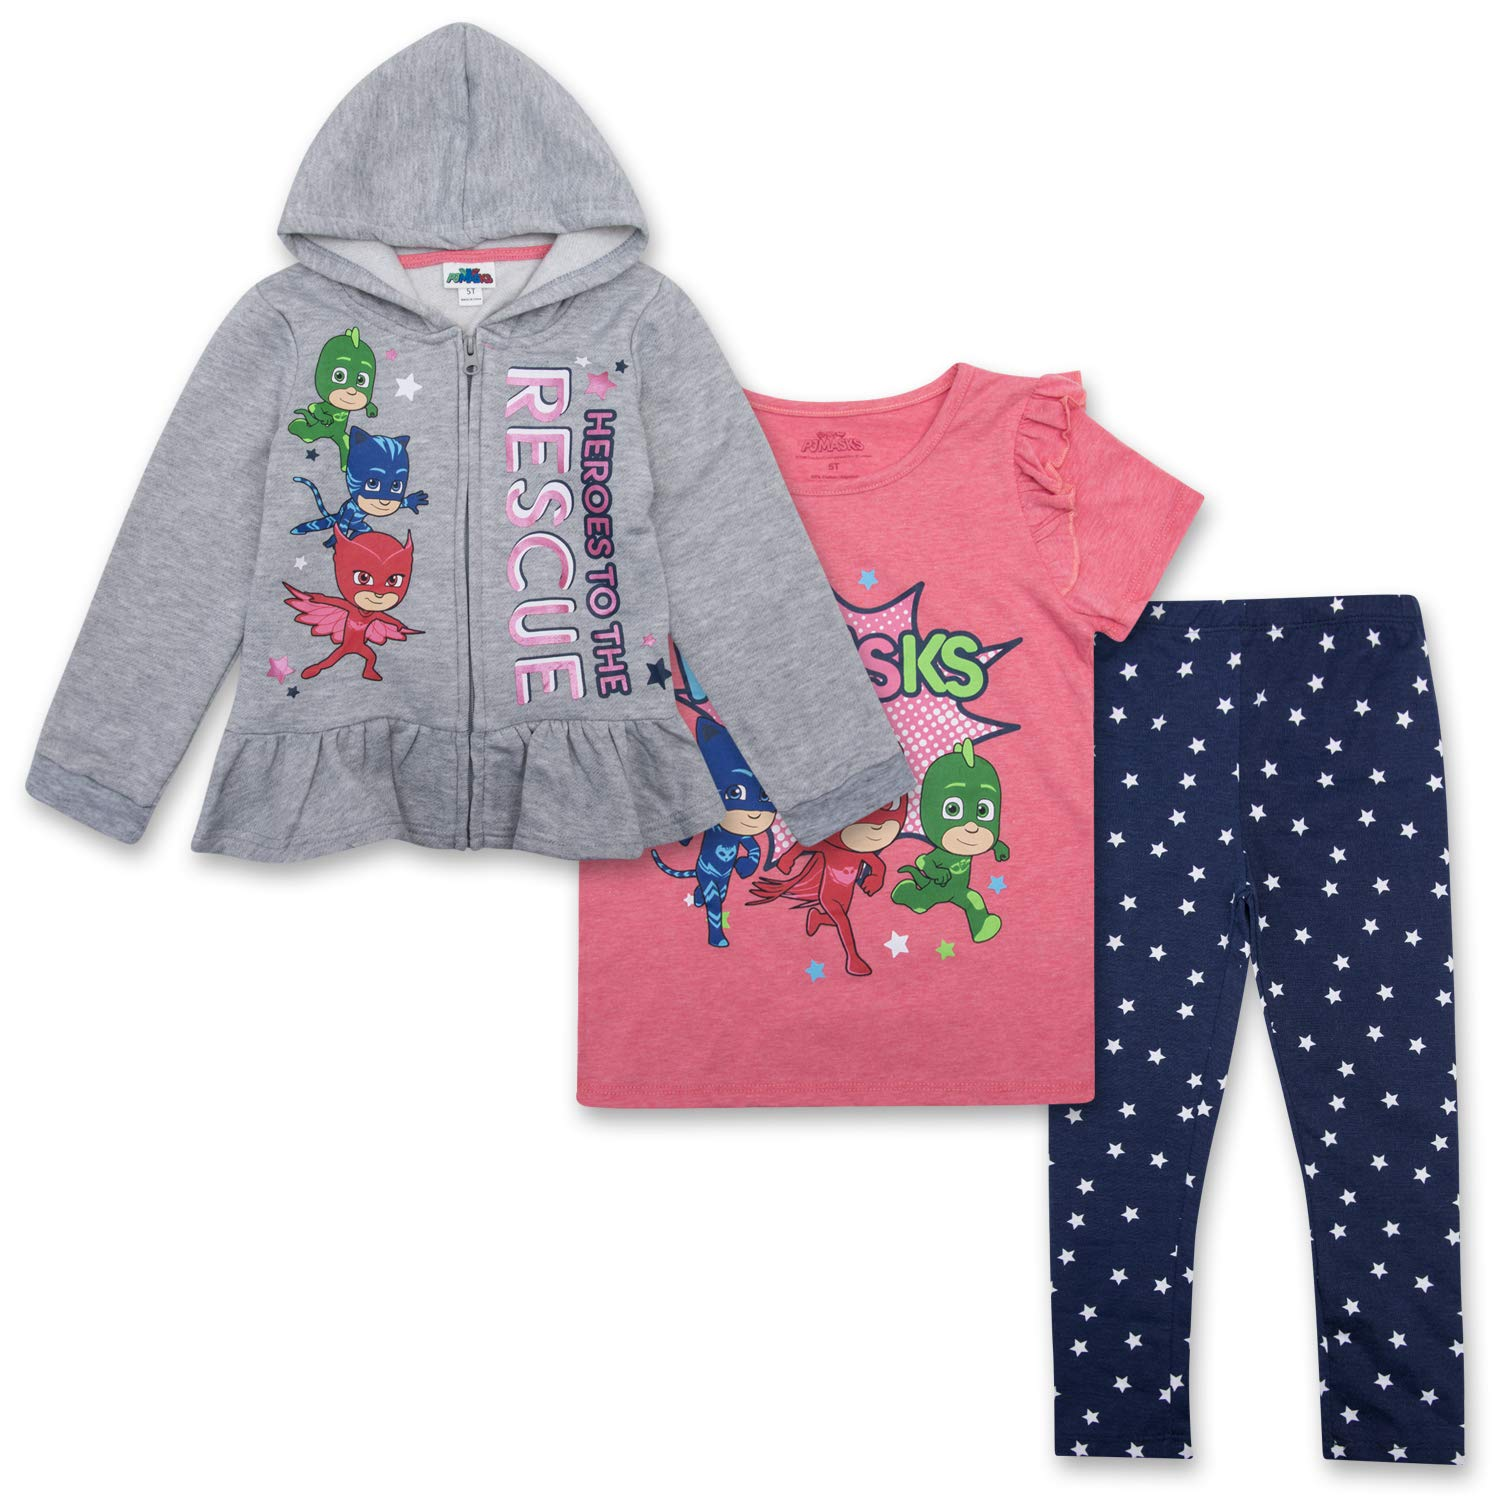 PJ Masks Toddler Girls Set - Catboy, Gekko & Owlette - Owlette Hoodie, T-Shirt & Sweatpants Set (Grey/Pink/Blue, 4T)